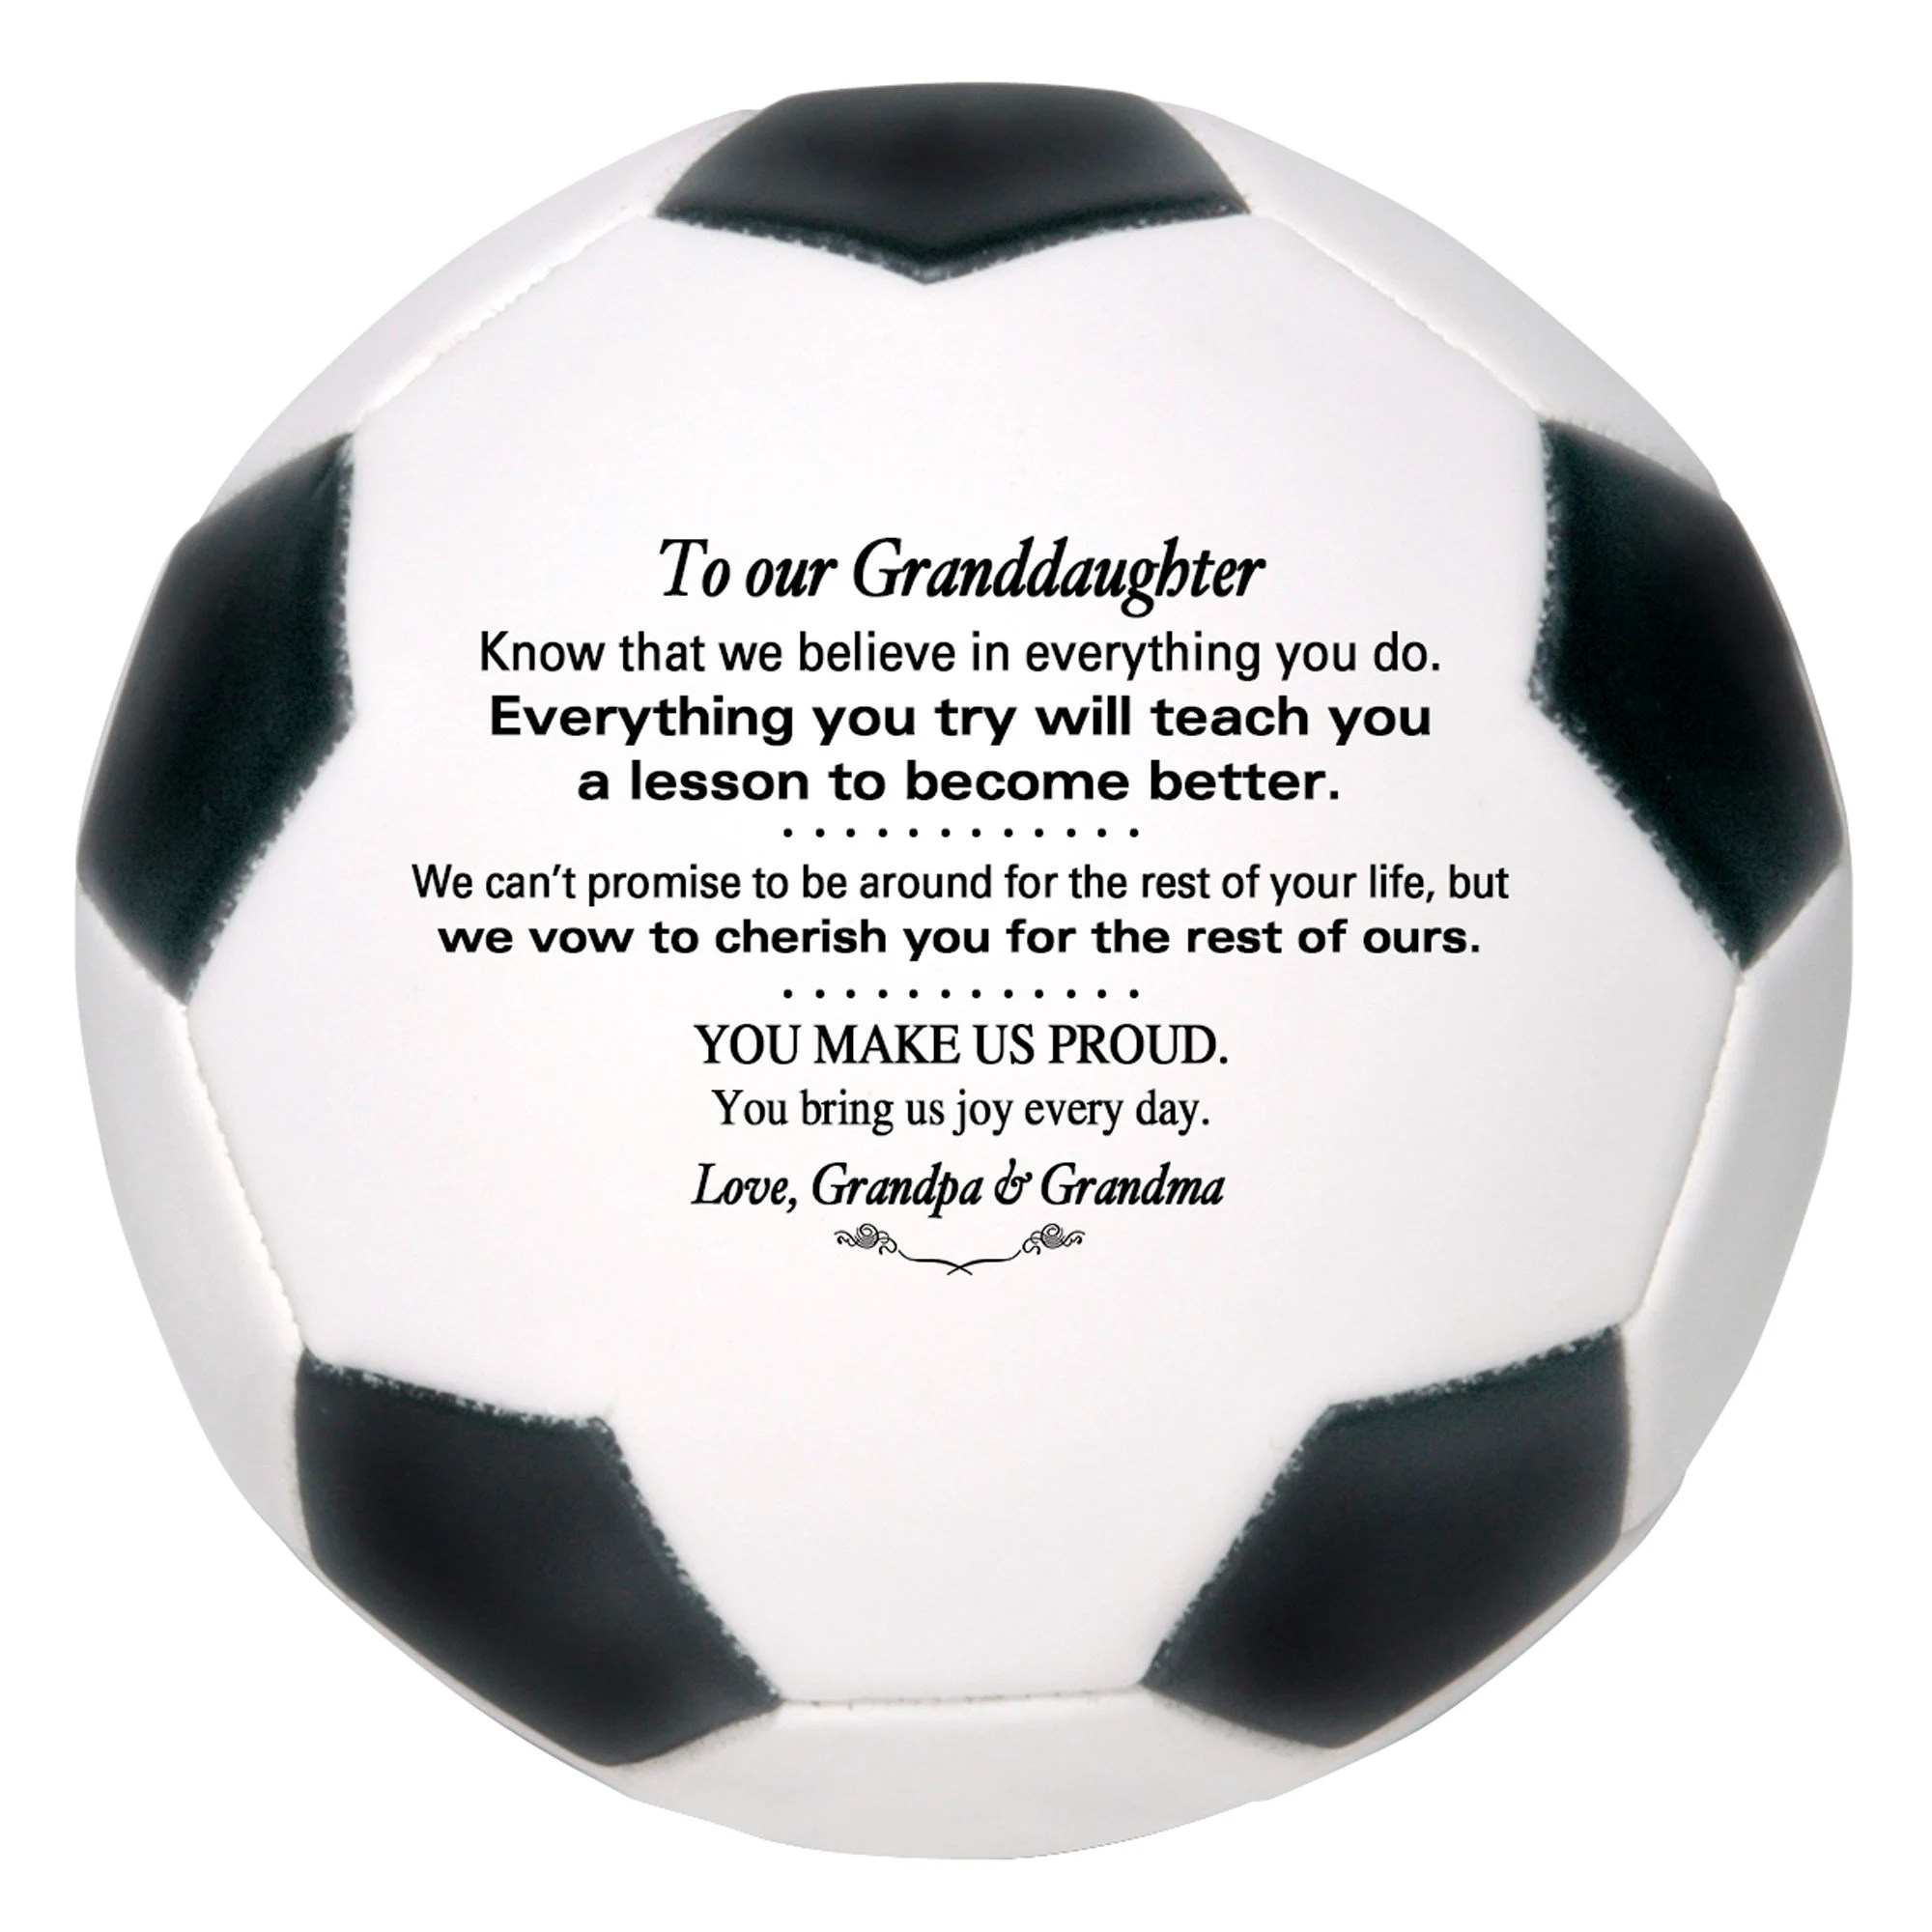 Personalized Custom Soccer Ball To Our Son Grandson Daughter image 3